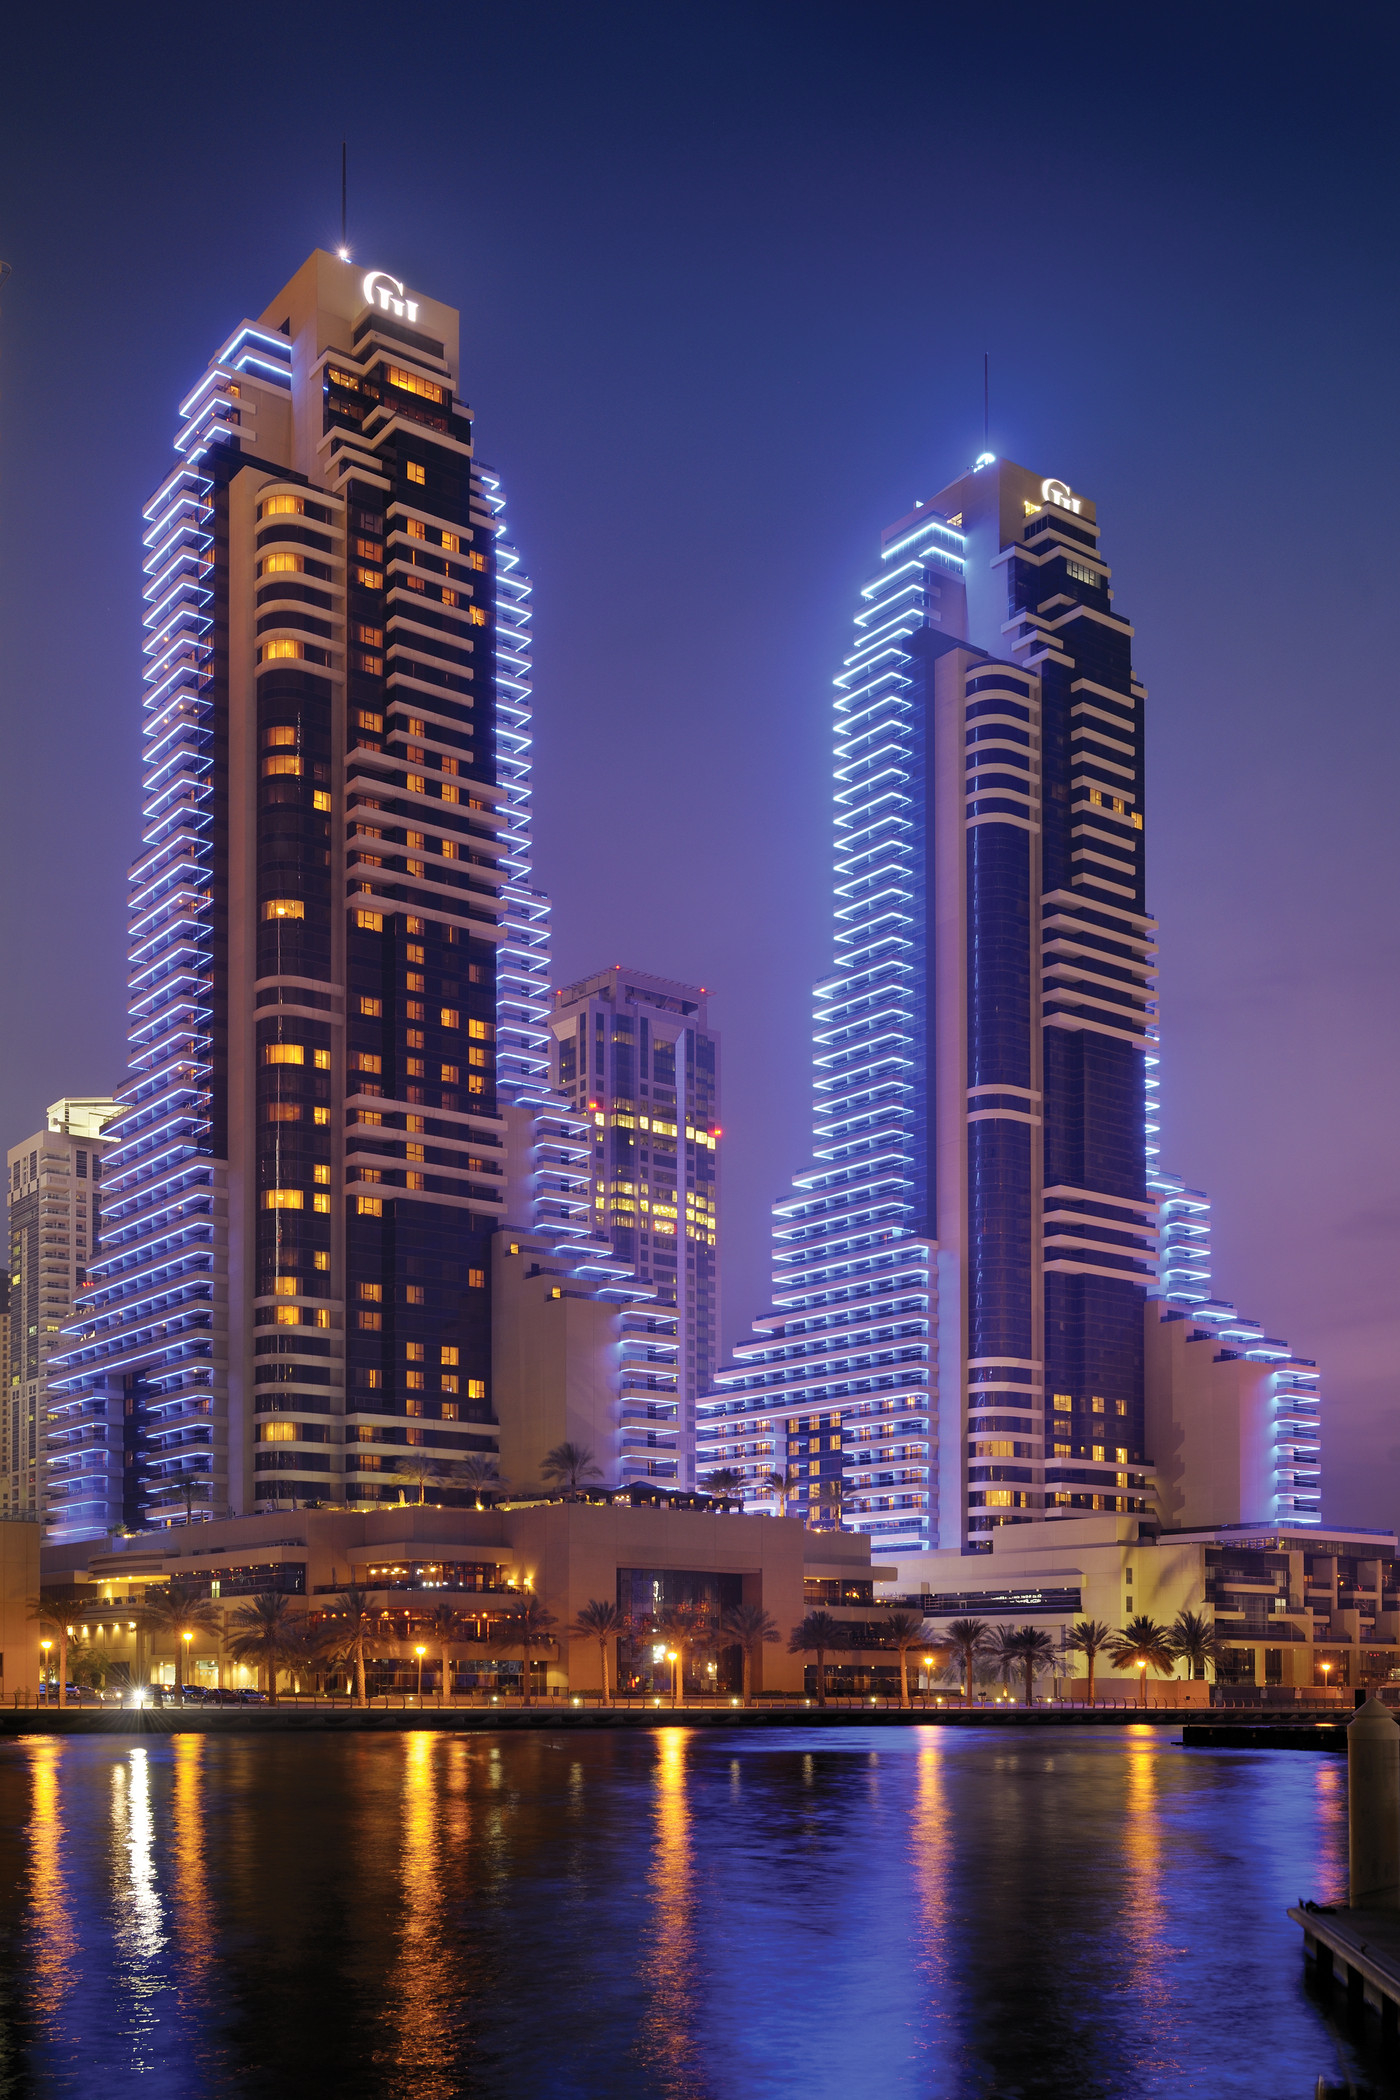 Grosvenor House Exterior at night, Dubai UAE